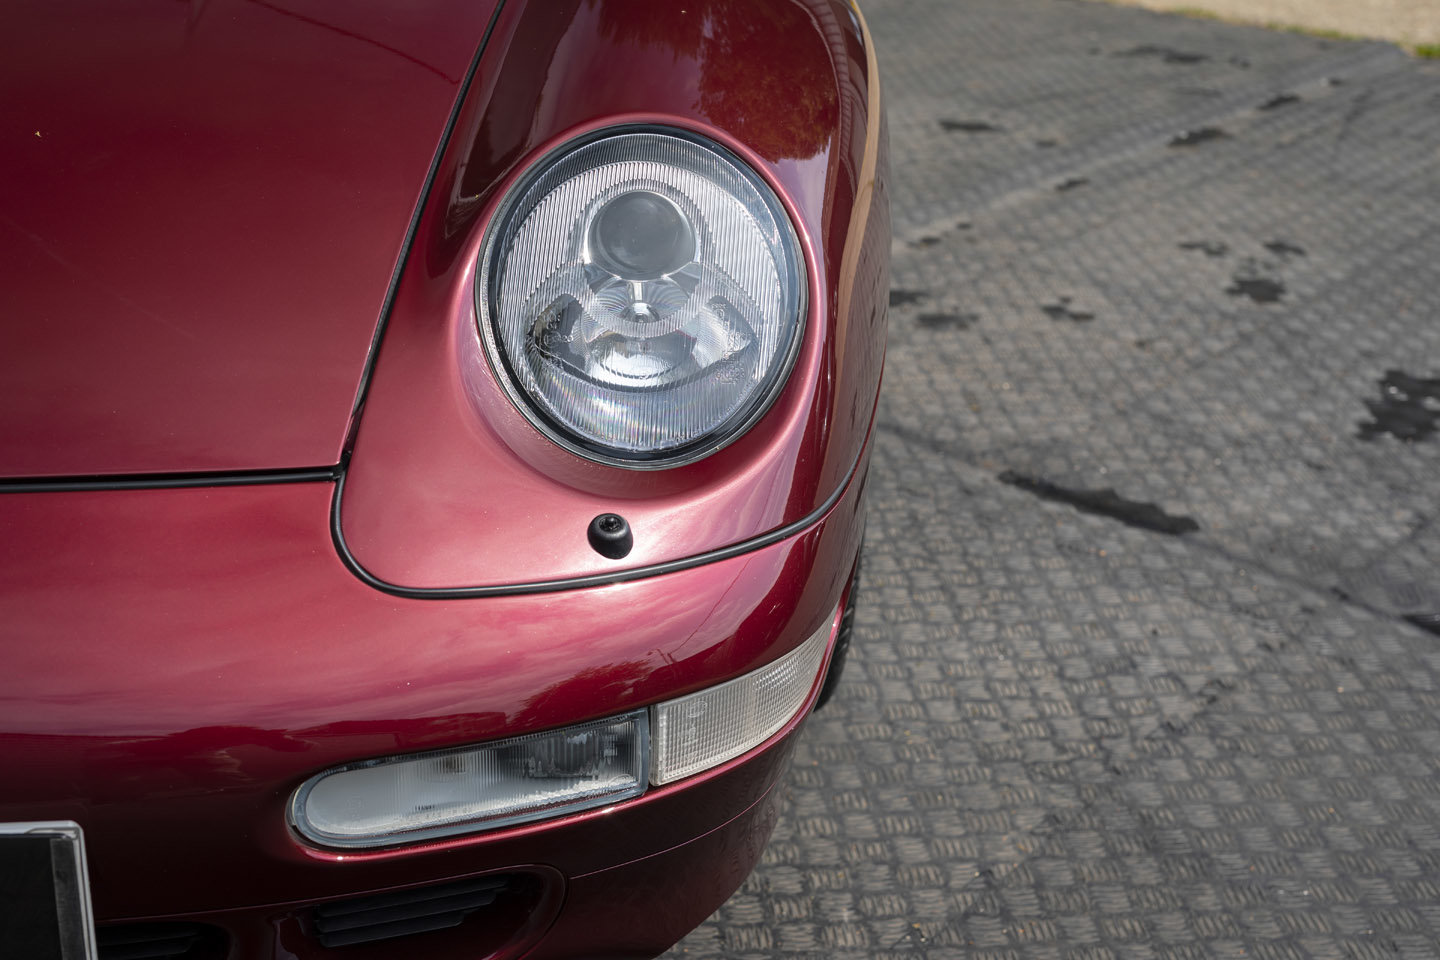 1995 PORSCHE 911 (993) TURBO ONLY UK CAR For Sale (picture 16 of 19)